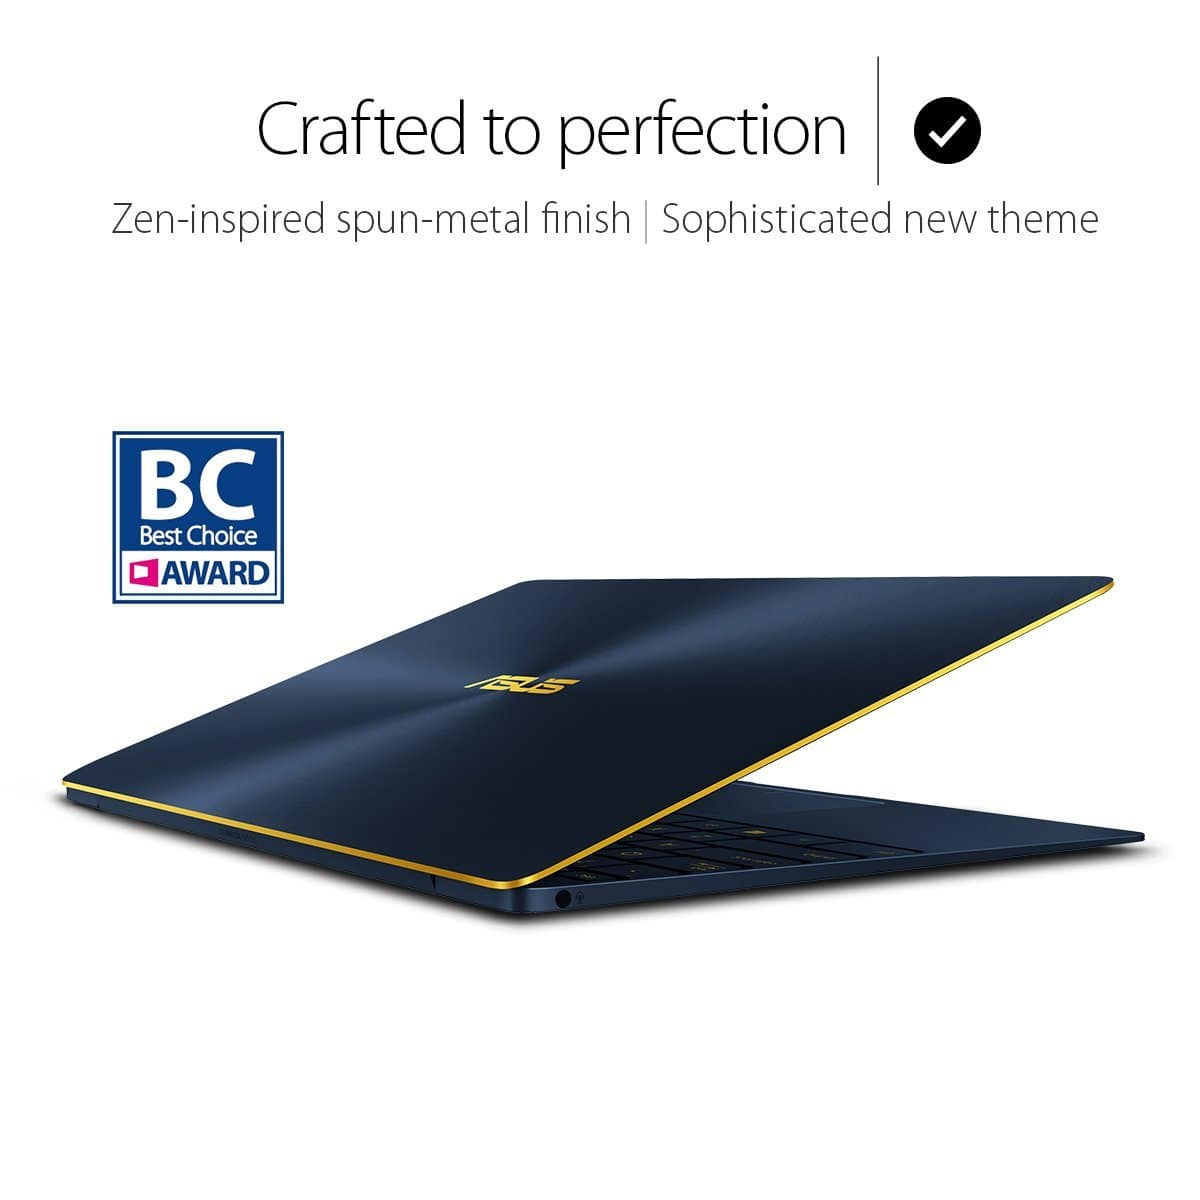 ASUS ZenBook 3 UX390UA 1080p-I7-16GDDR3-512PCIe SSD Ultrabook (Royal Blue) Lowest price $999